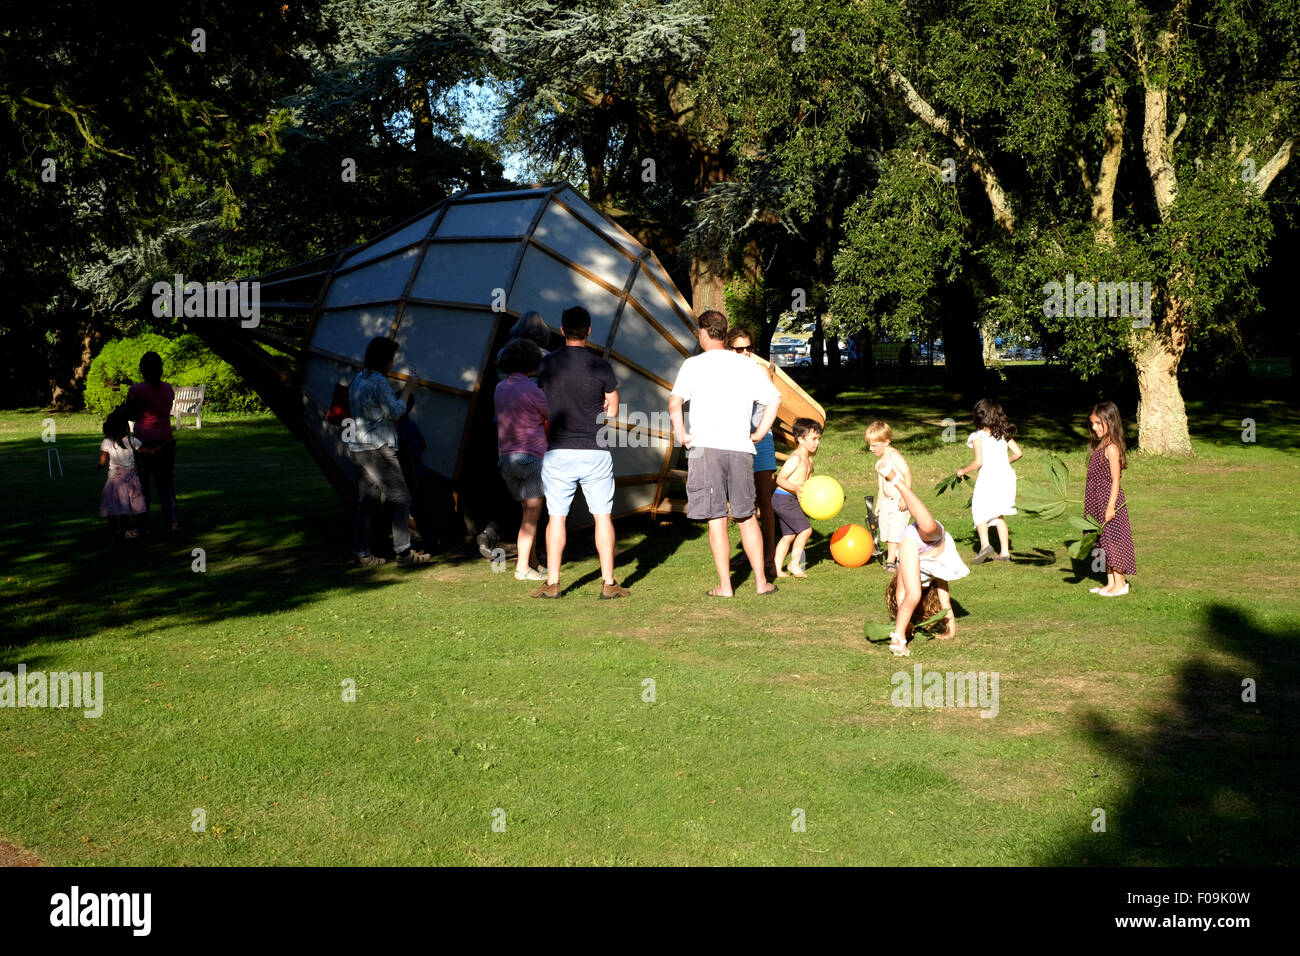 stock photo people looking at large garden camera obscura away from the chilli festival west dean gardens chichester england uk 2015 - Large Garden 2015